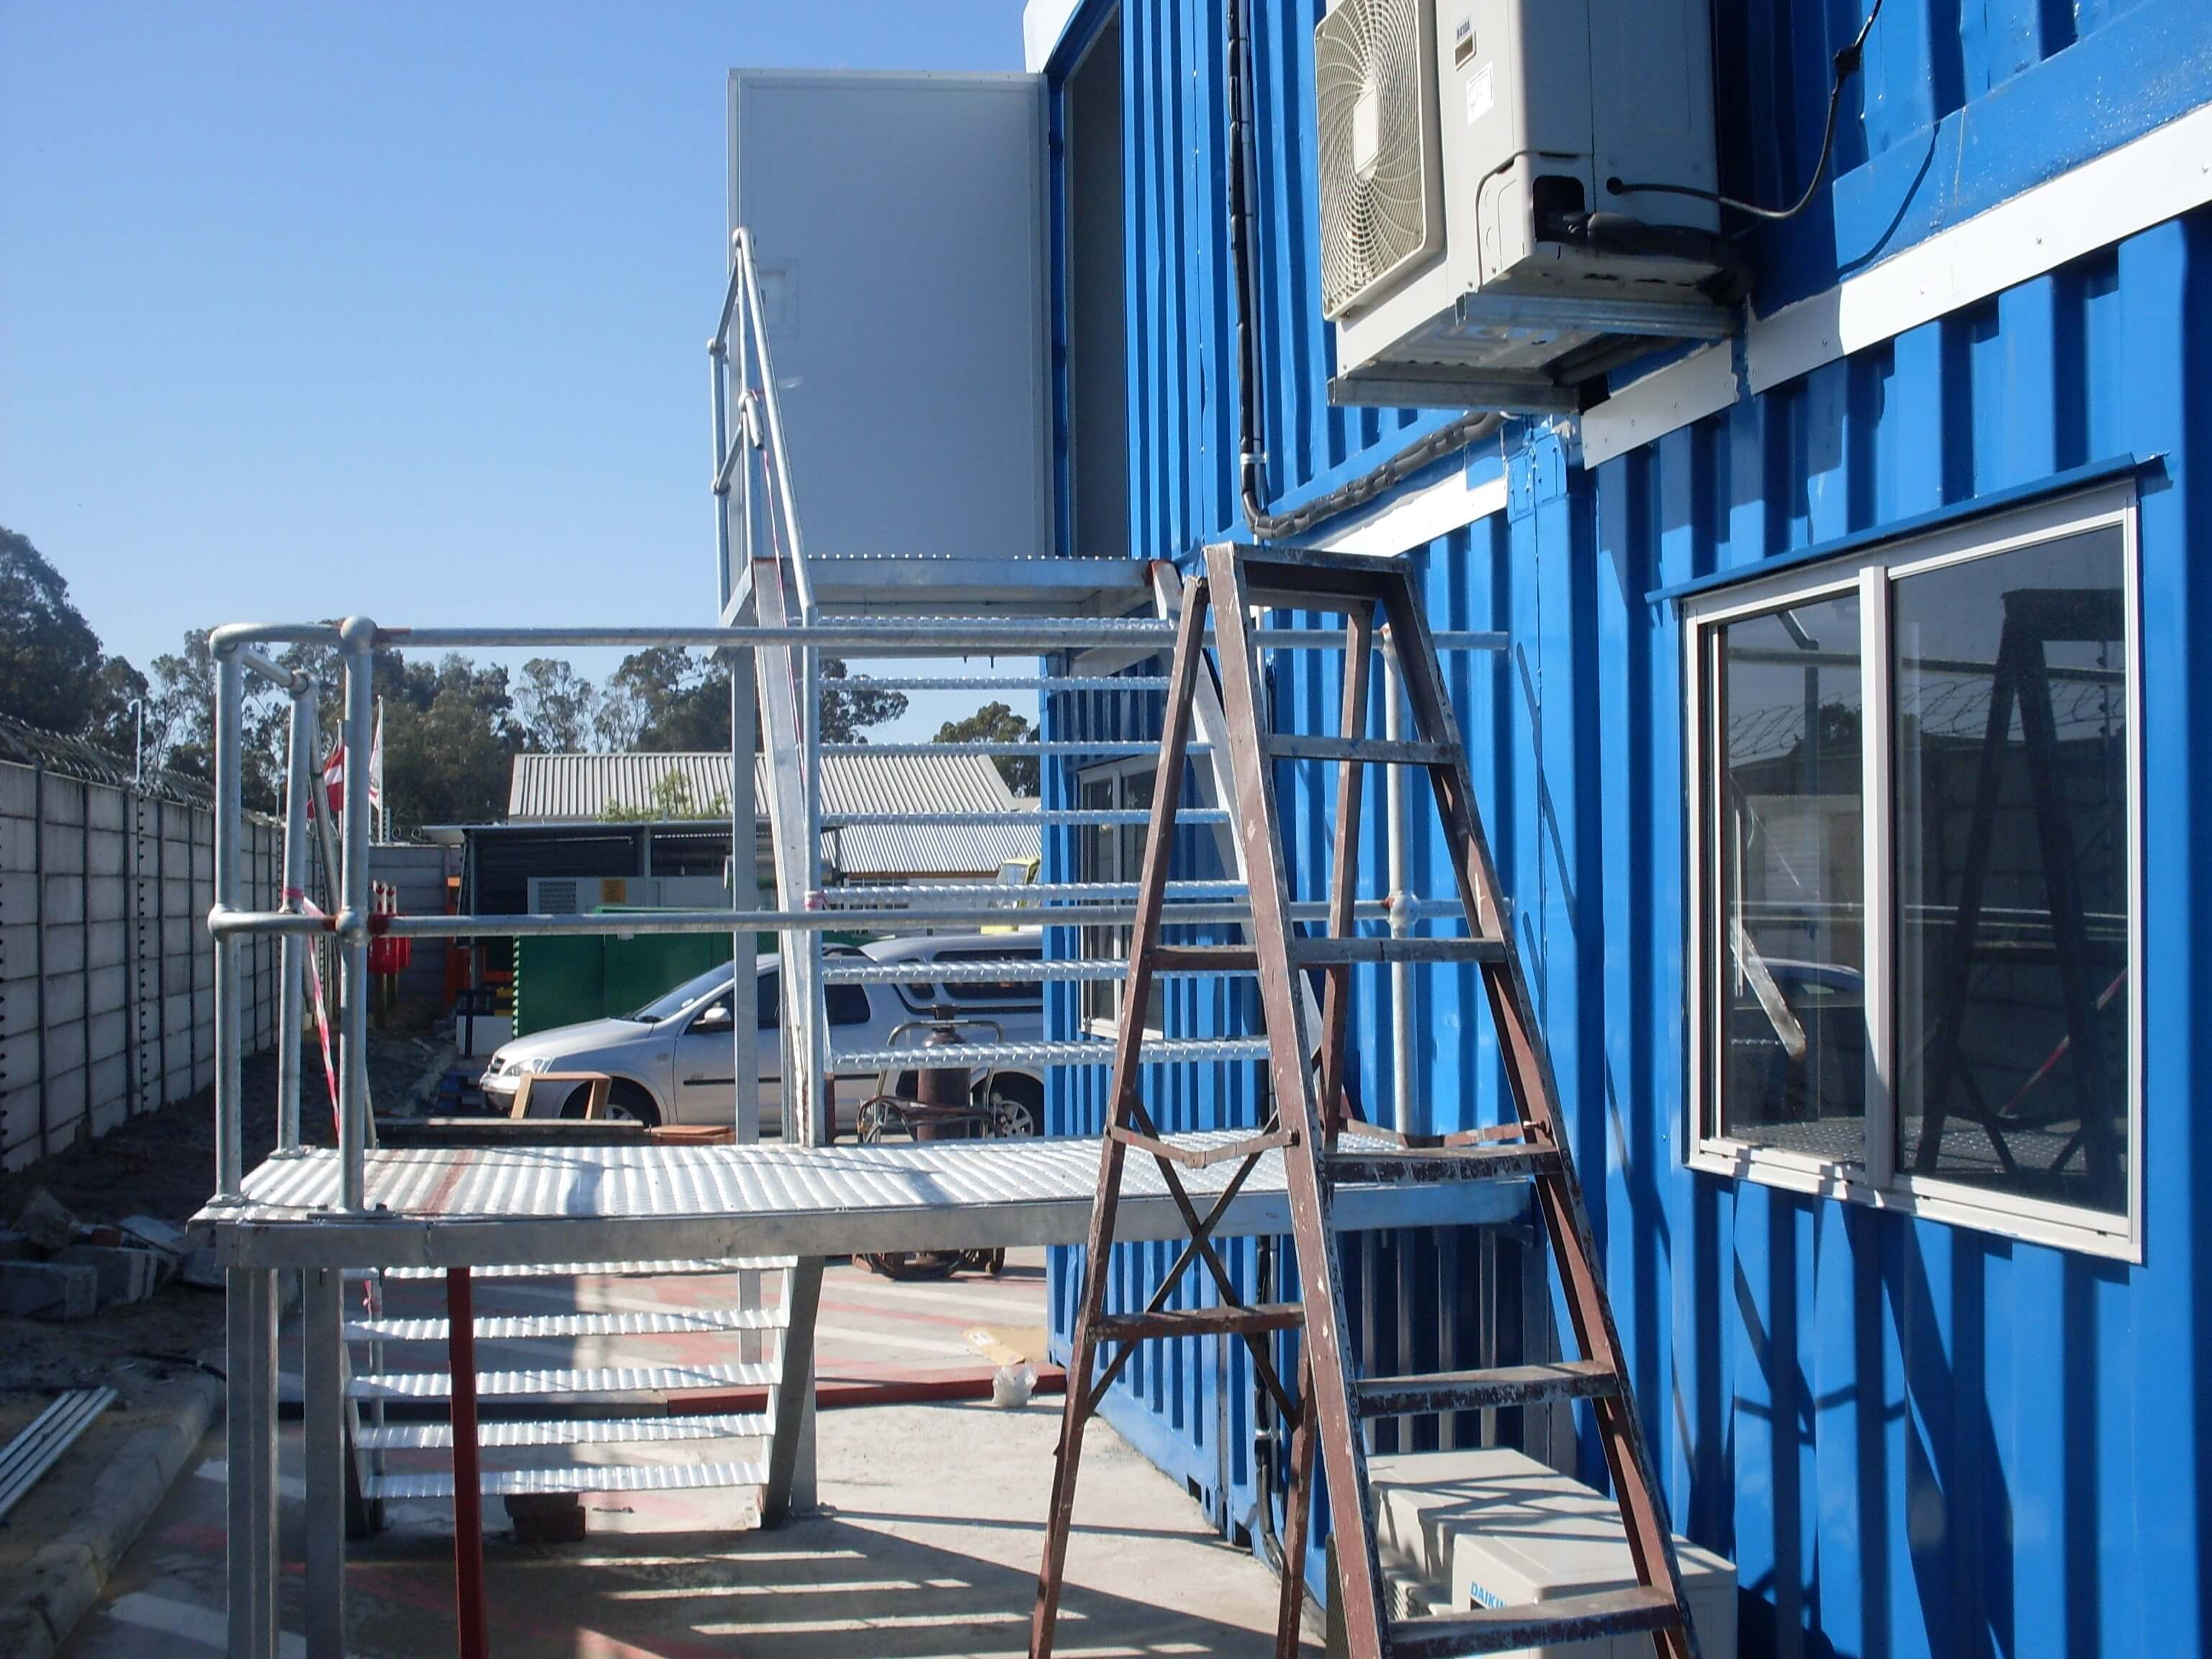 Blue Container With Outdoor Air Conditioner   Container Rental & Sales